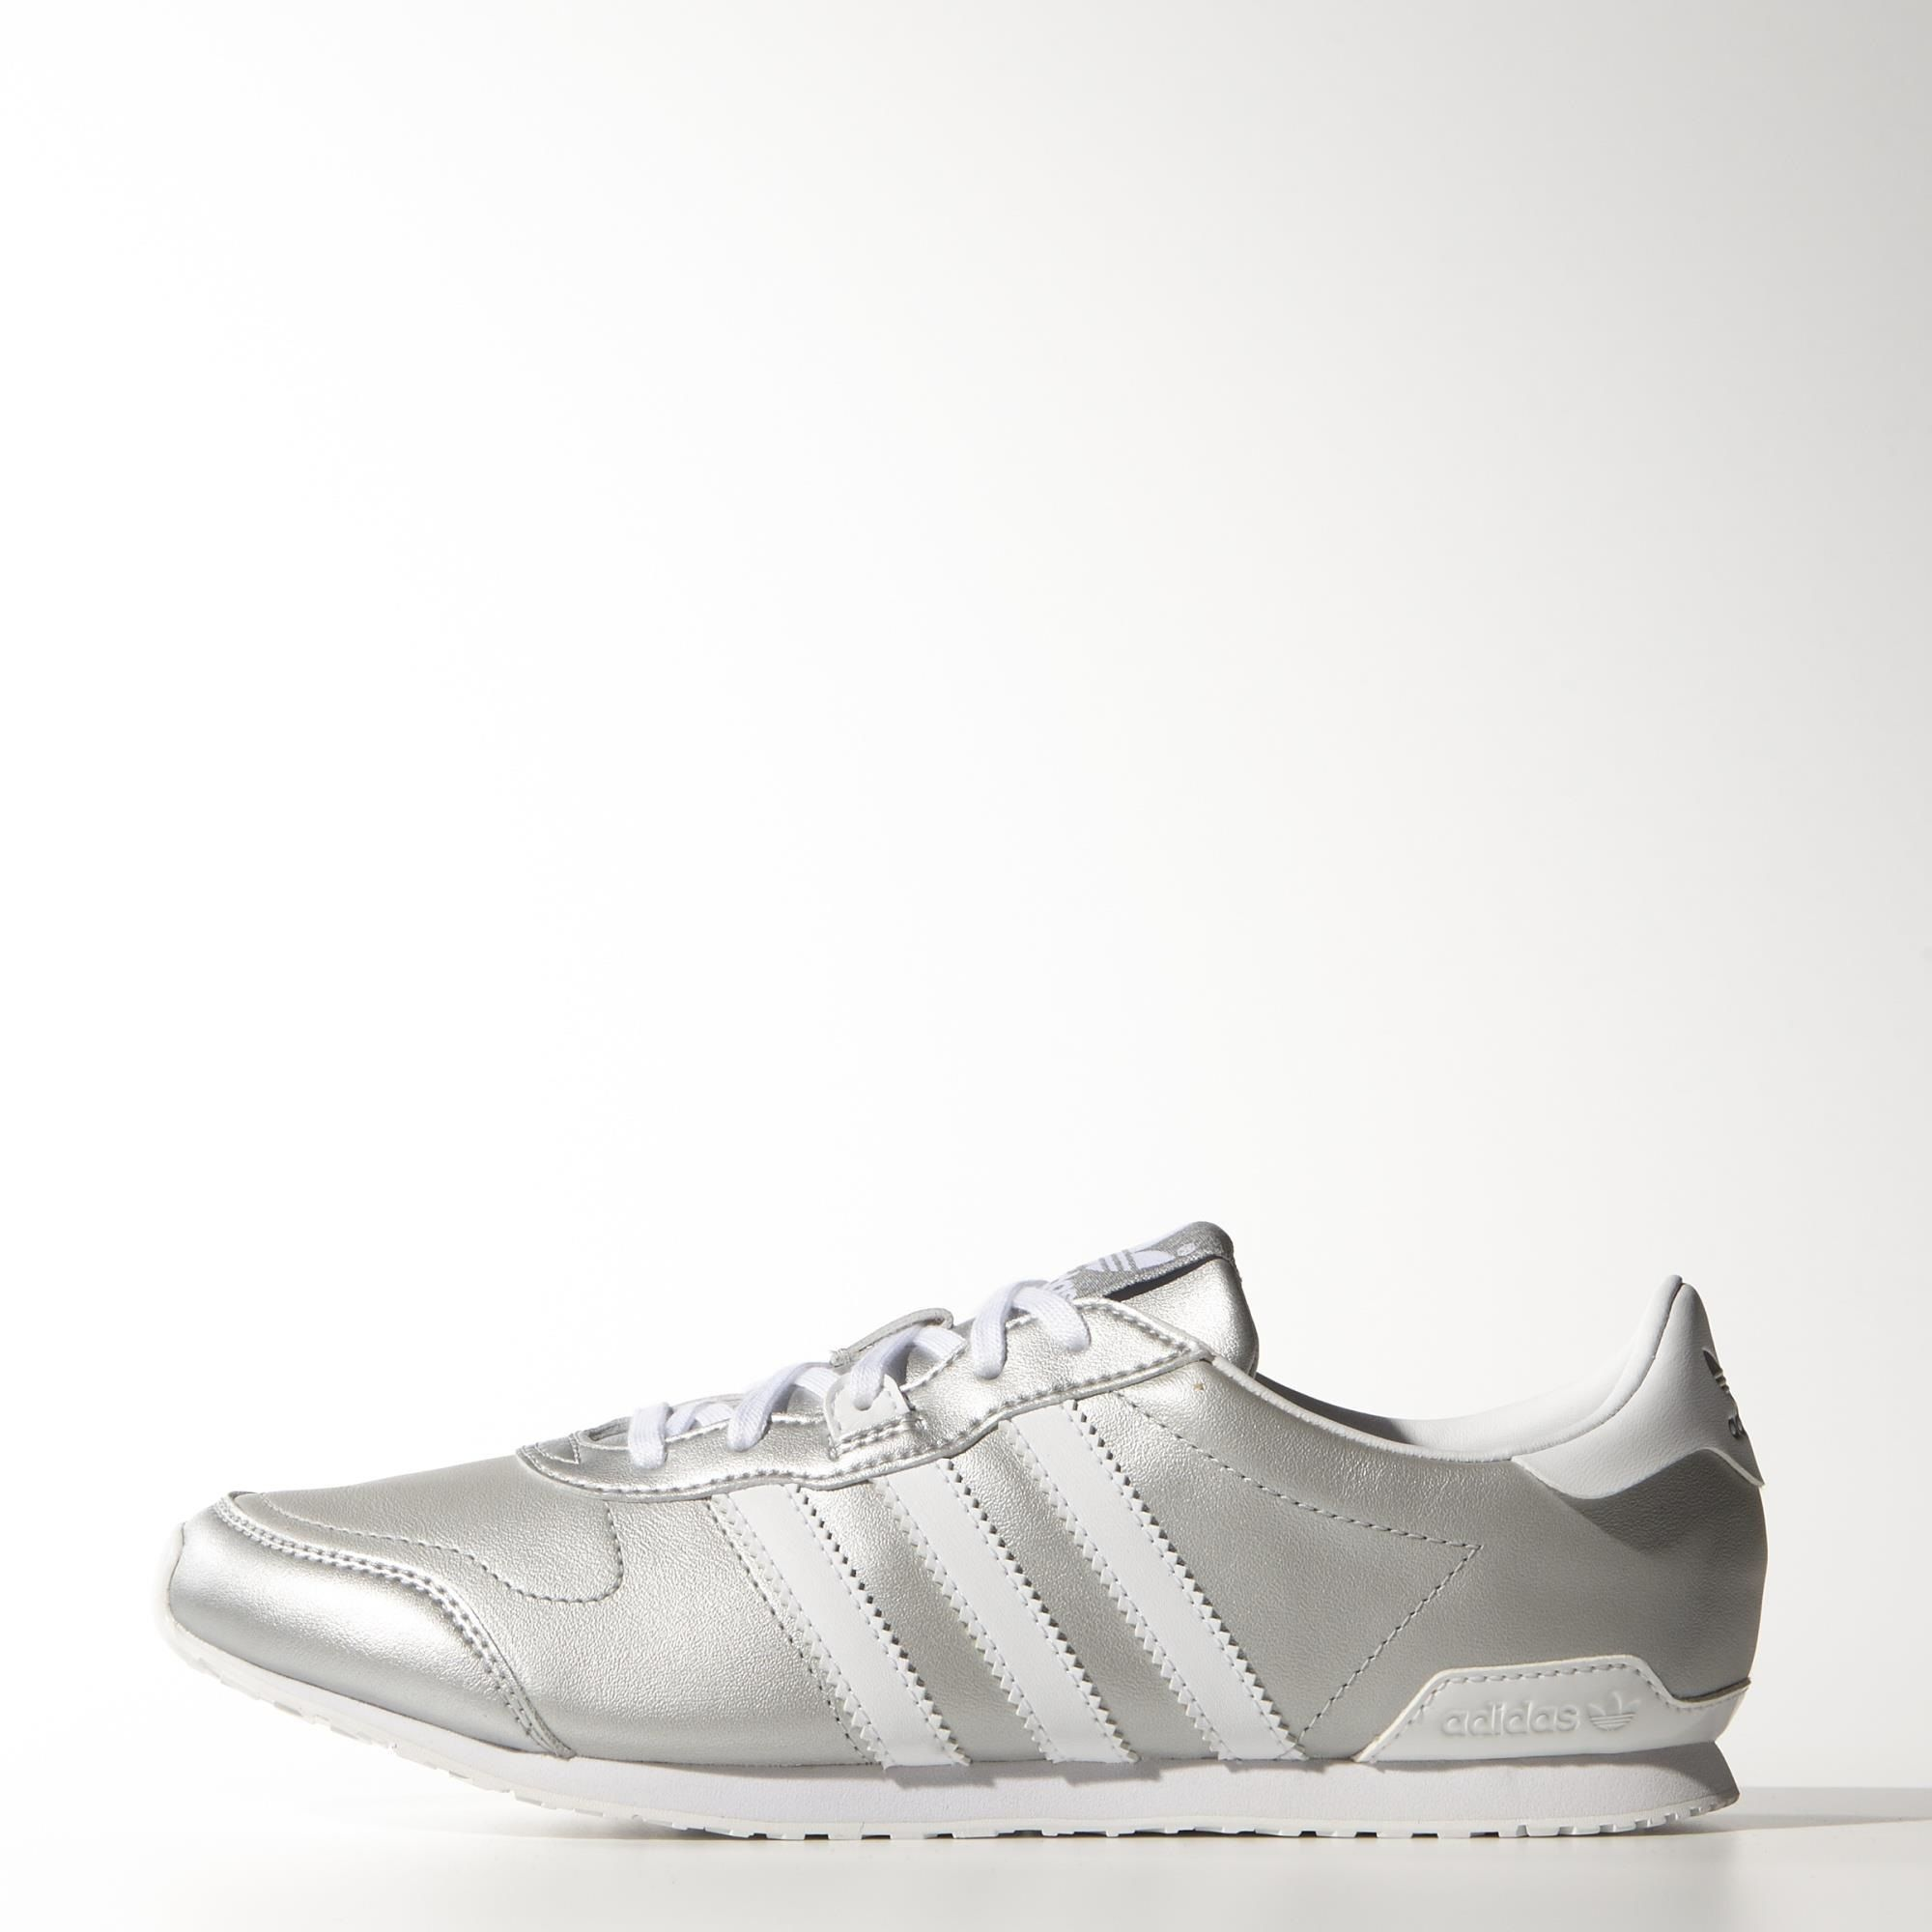 Get your shine on with these classic silver adidas ZX 700